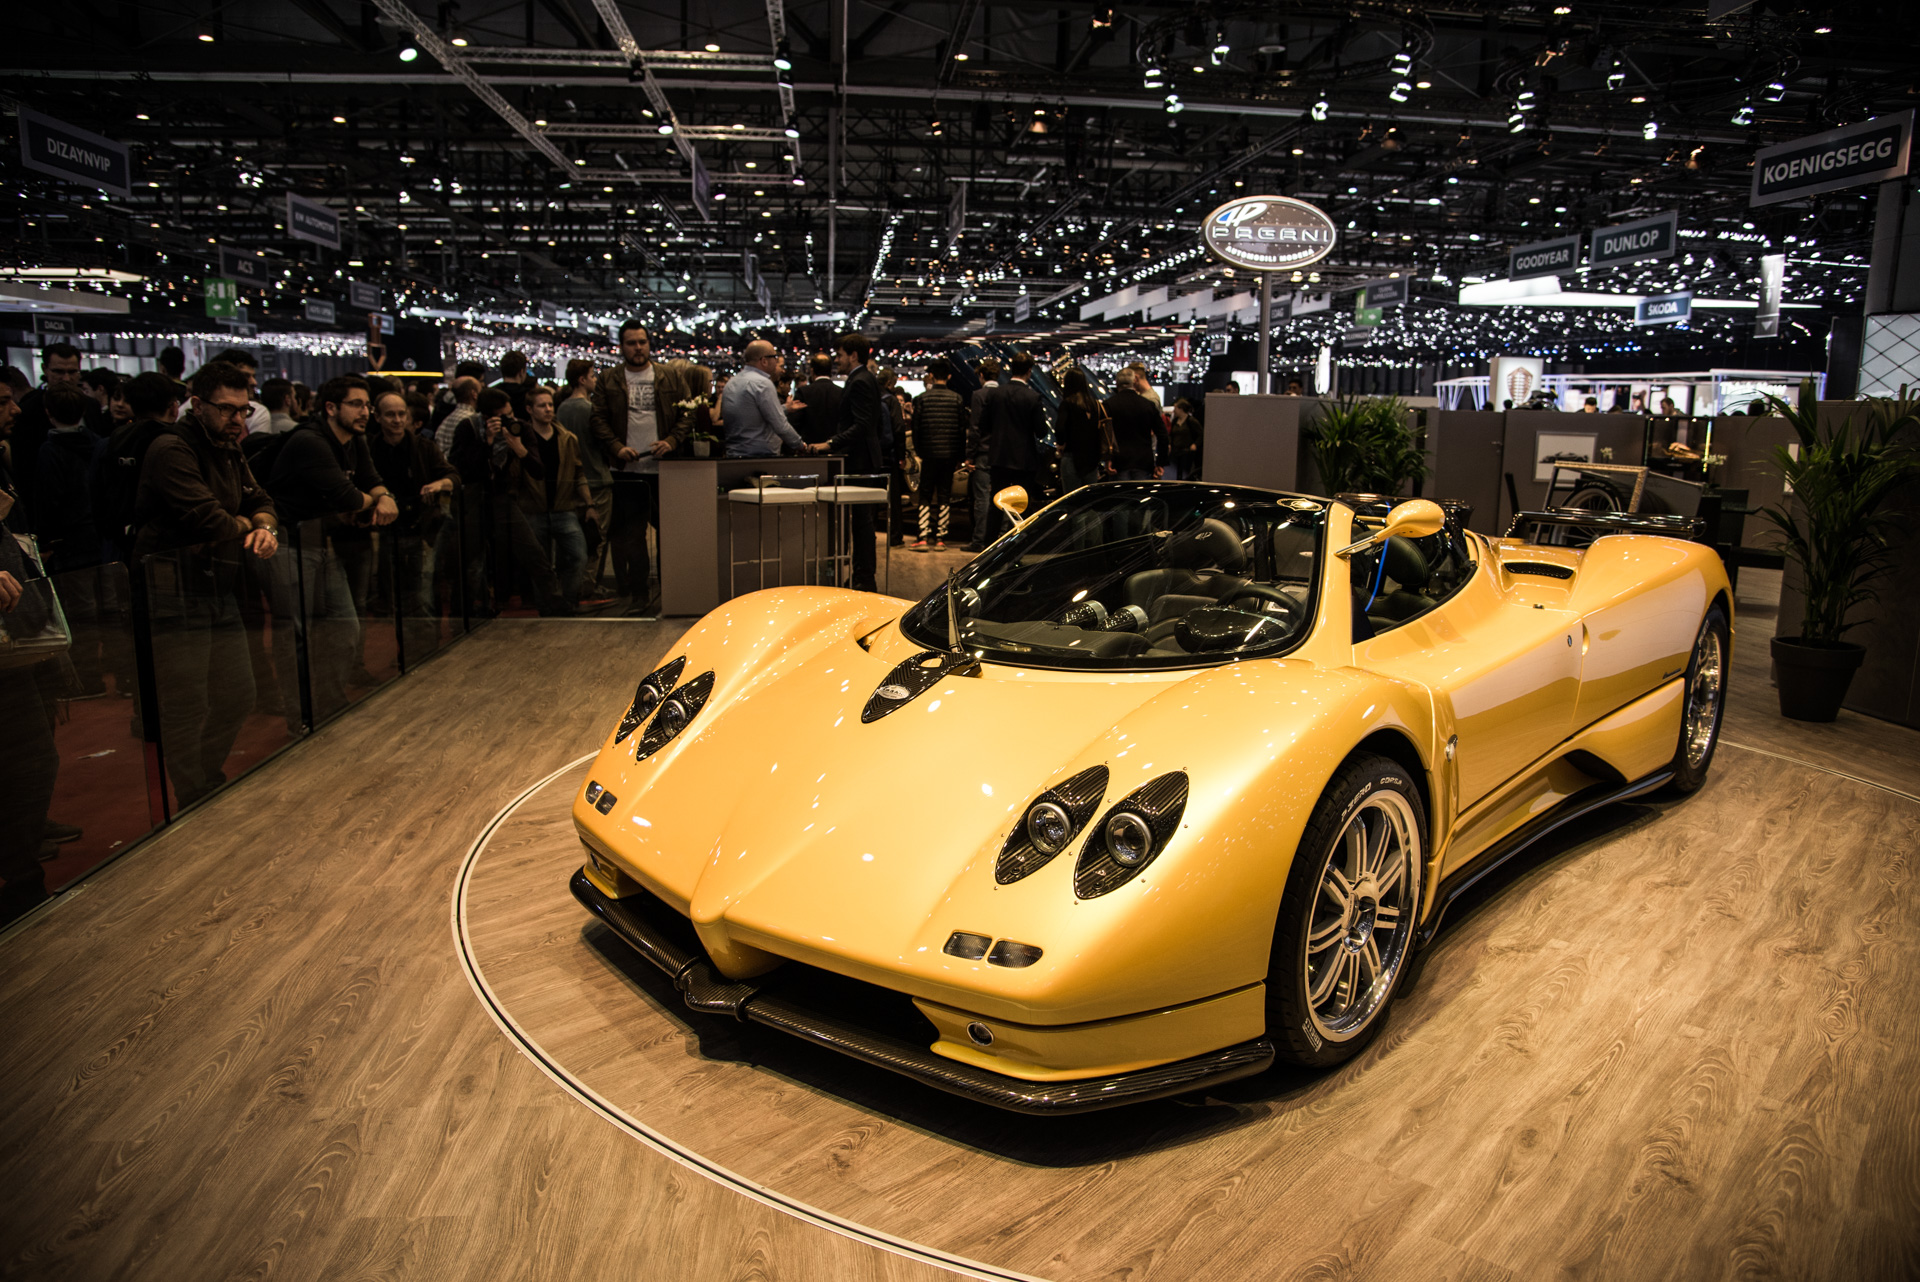 geneva-international-motor-show-igor-sinitsin-118